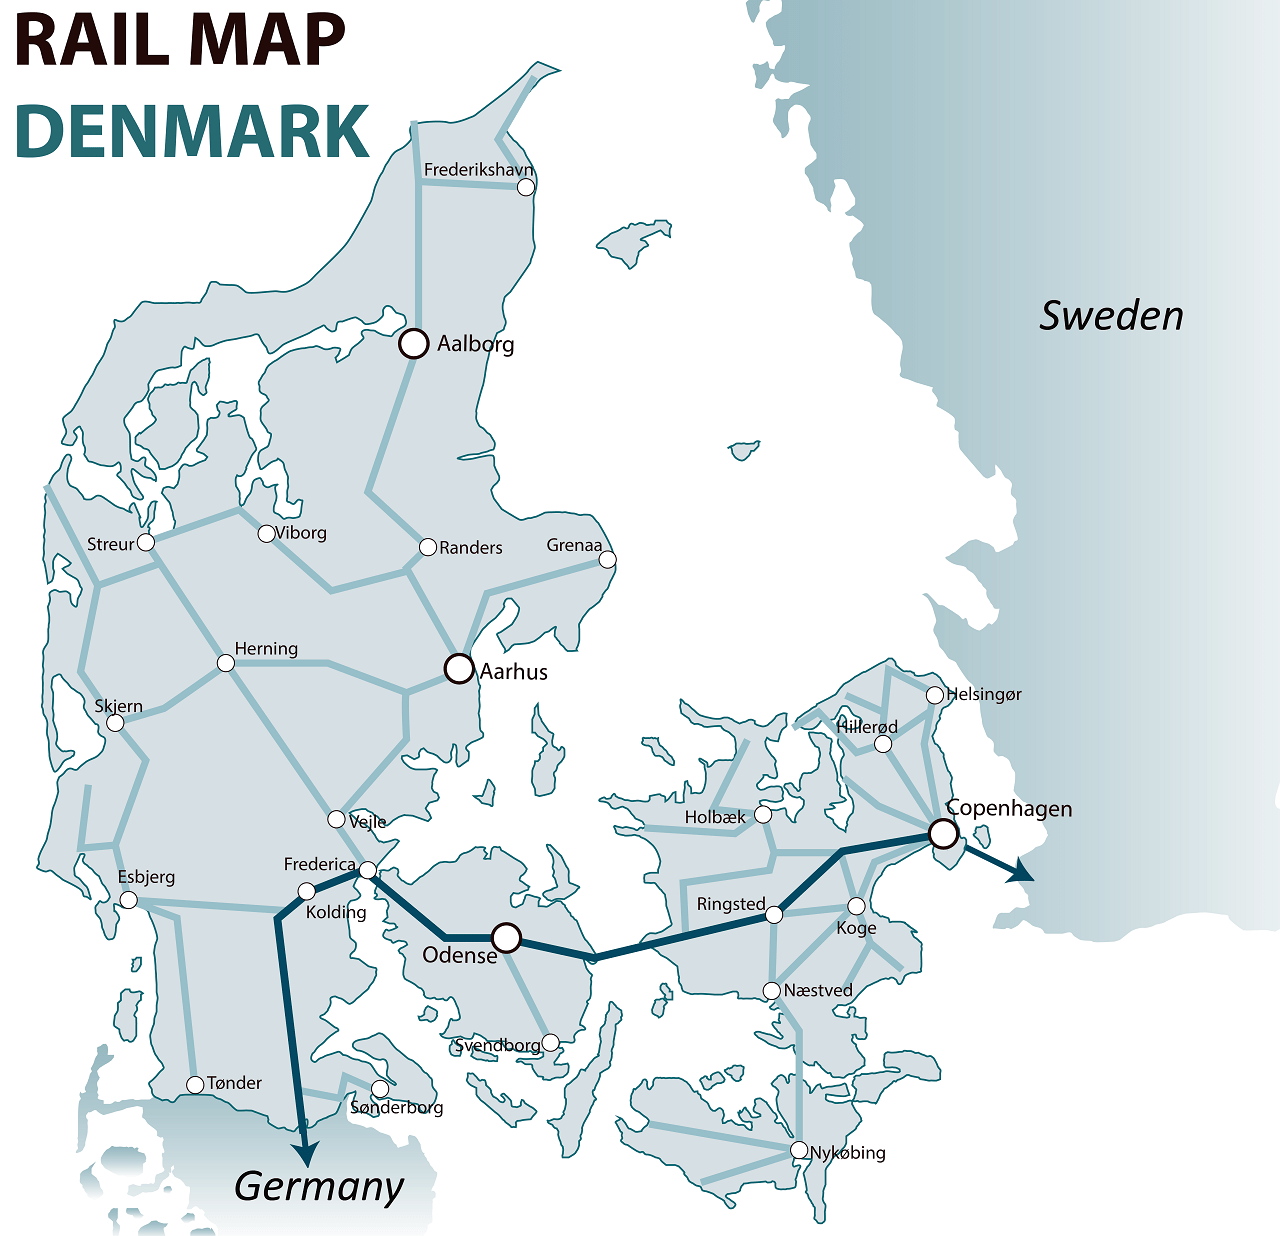 Denmark rail map